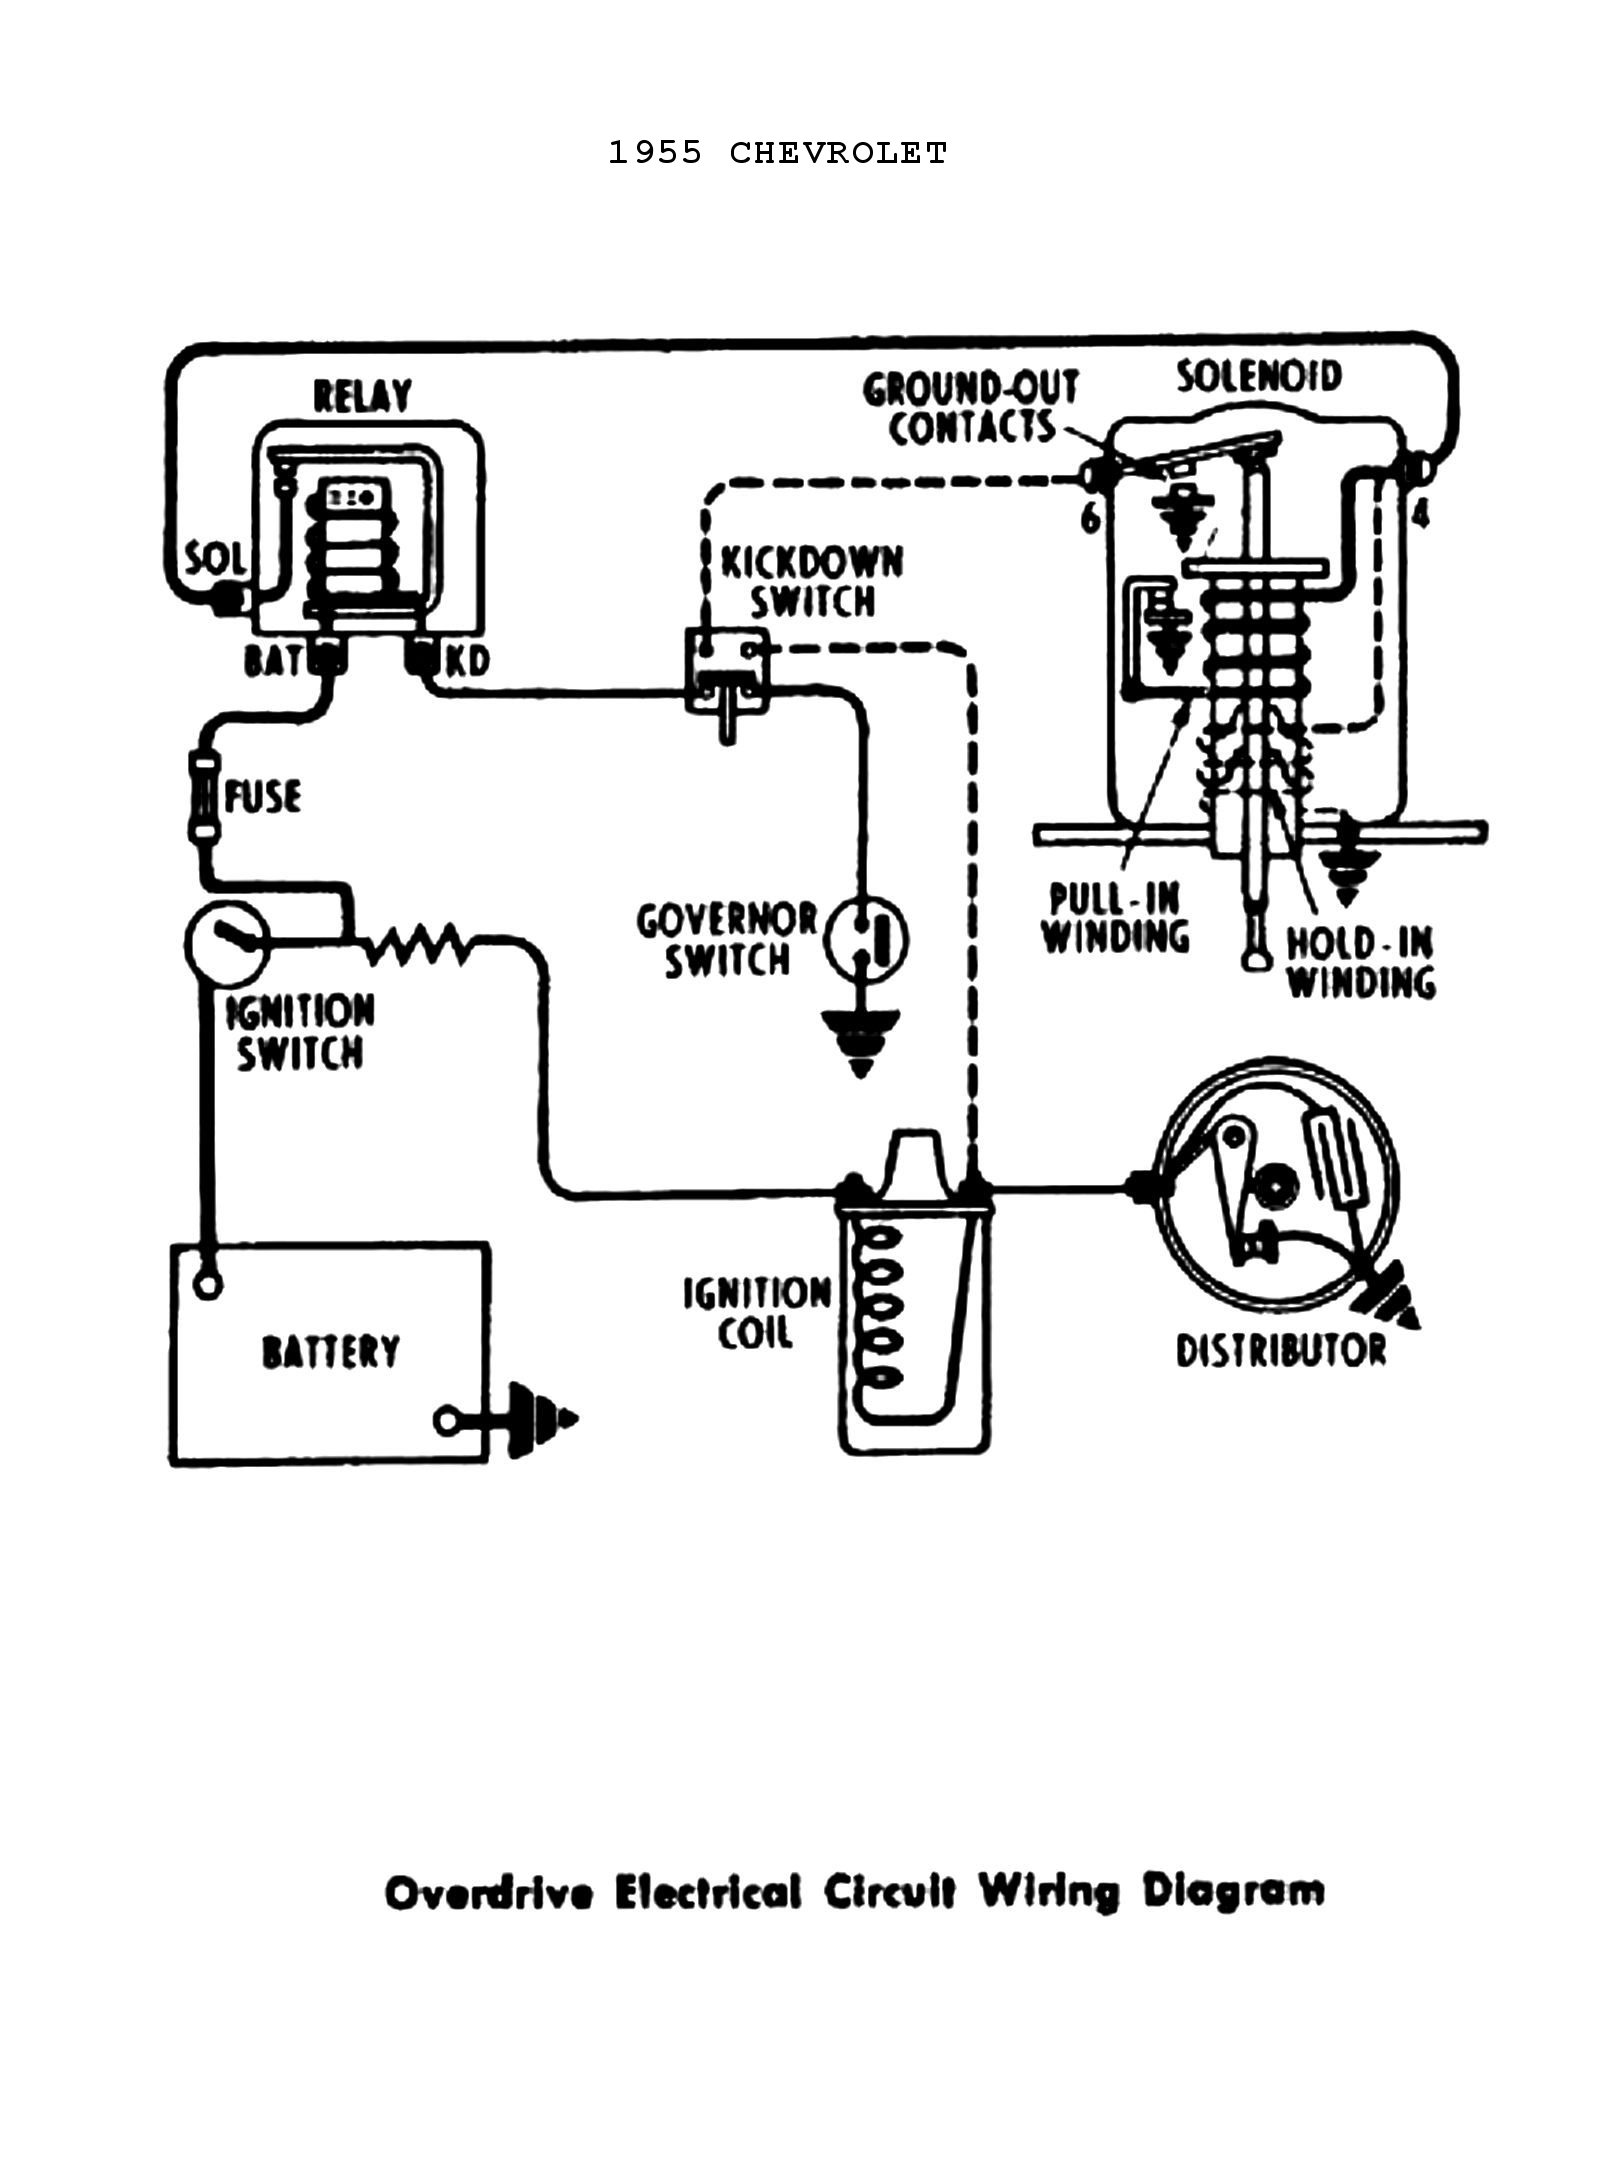 1955 Dodge Wiring Diagram Diy Enthusiasts Diagrams 1942 Images Gallery